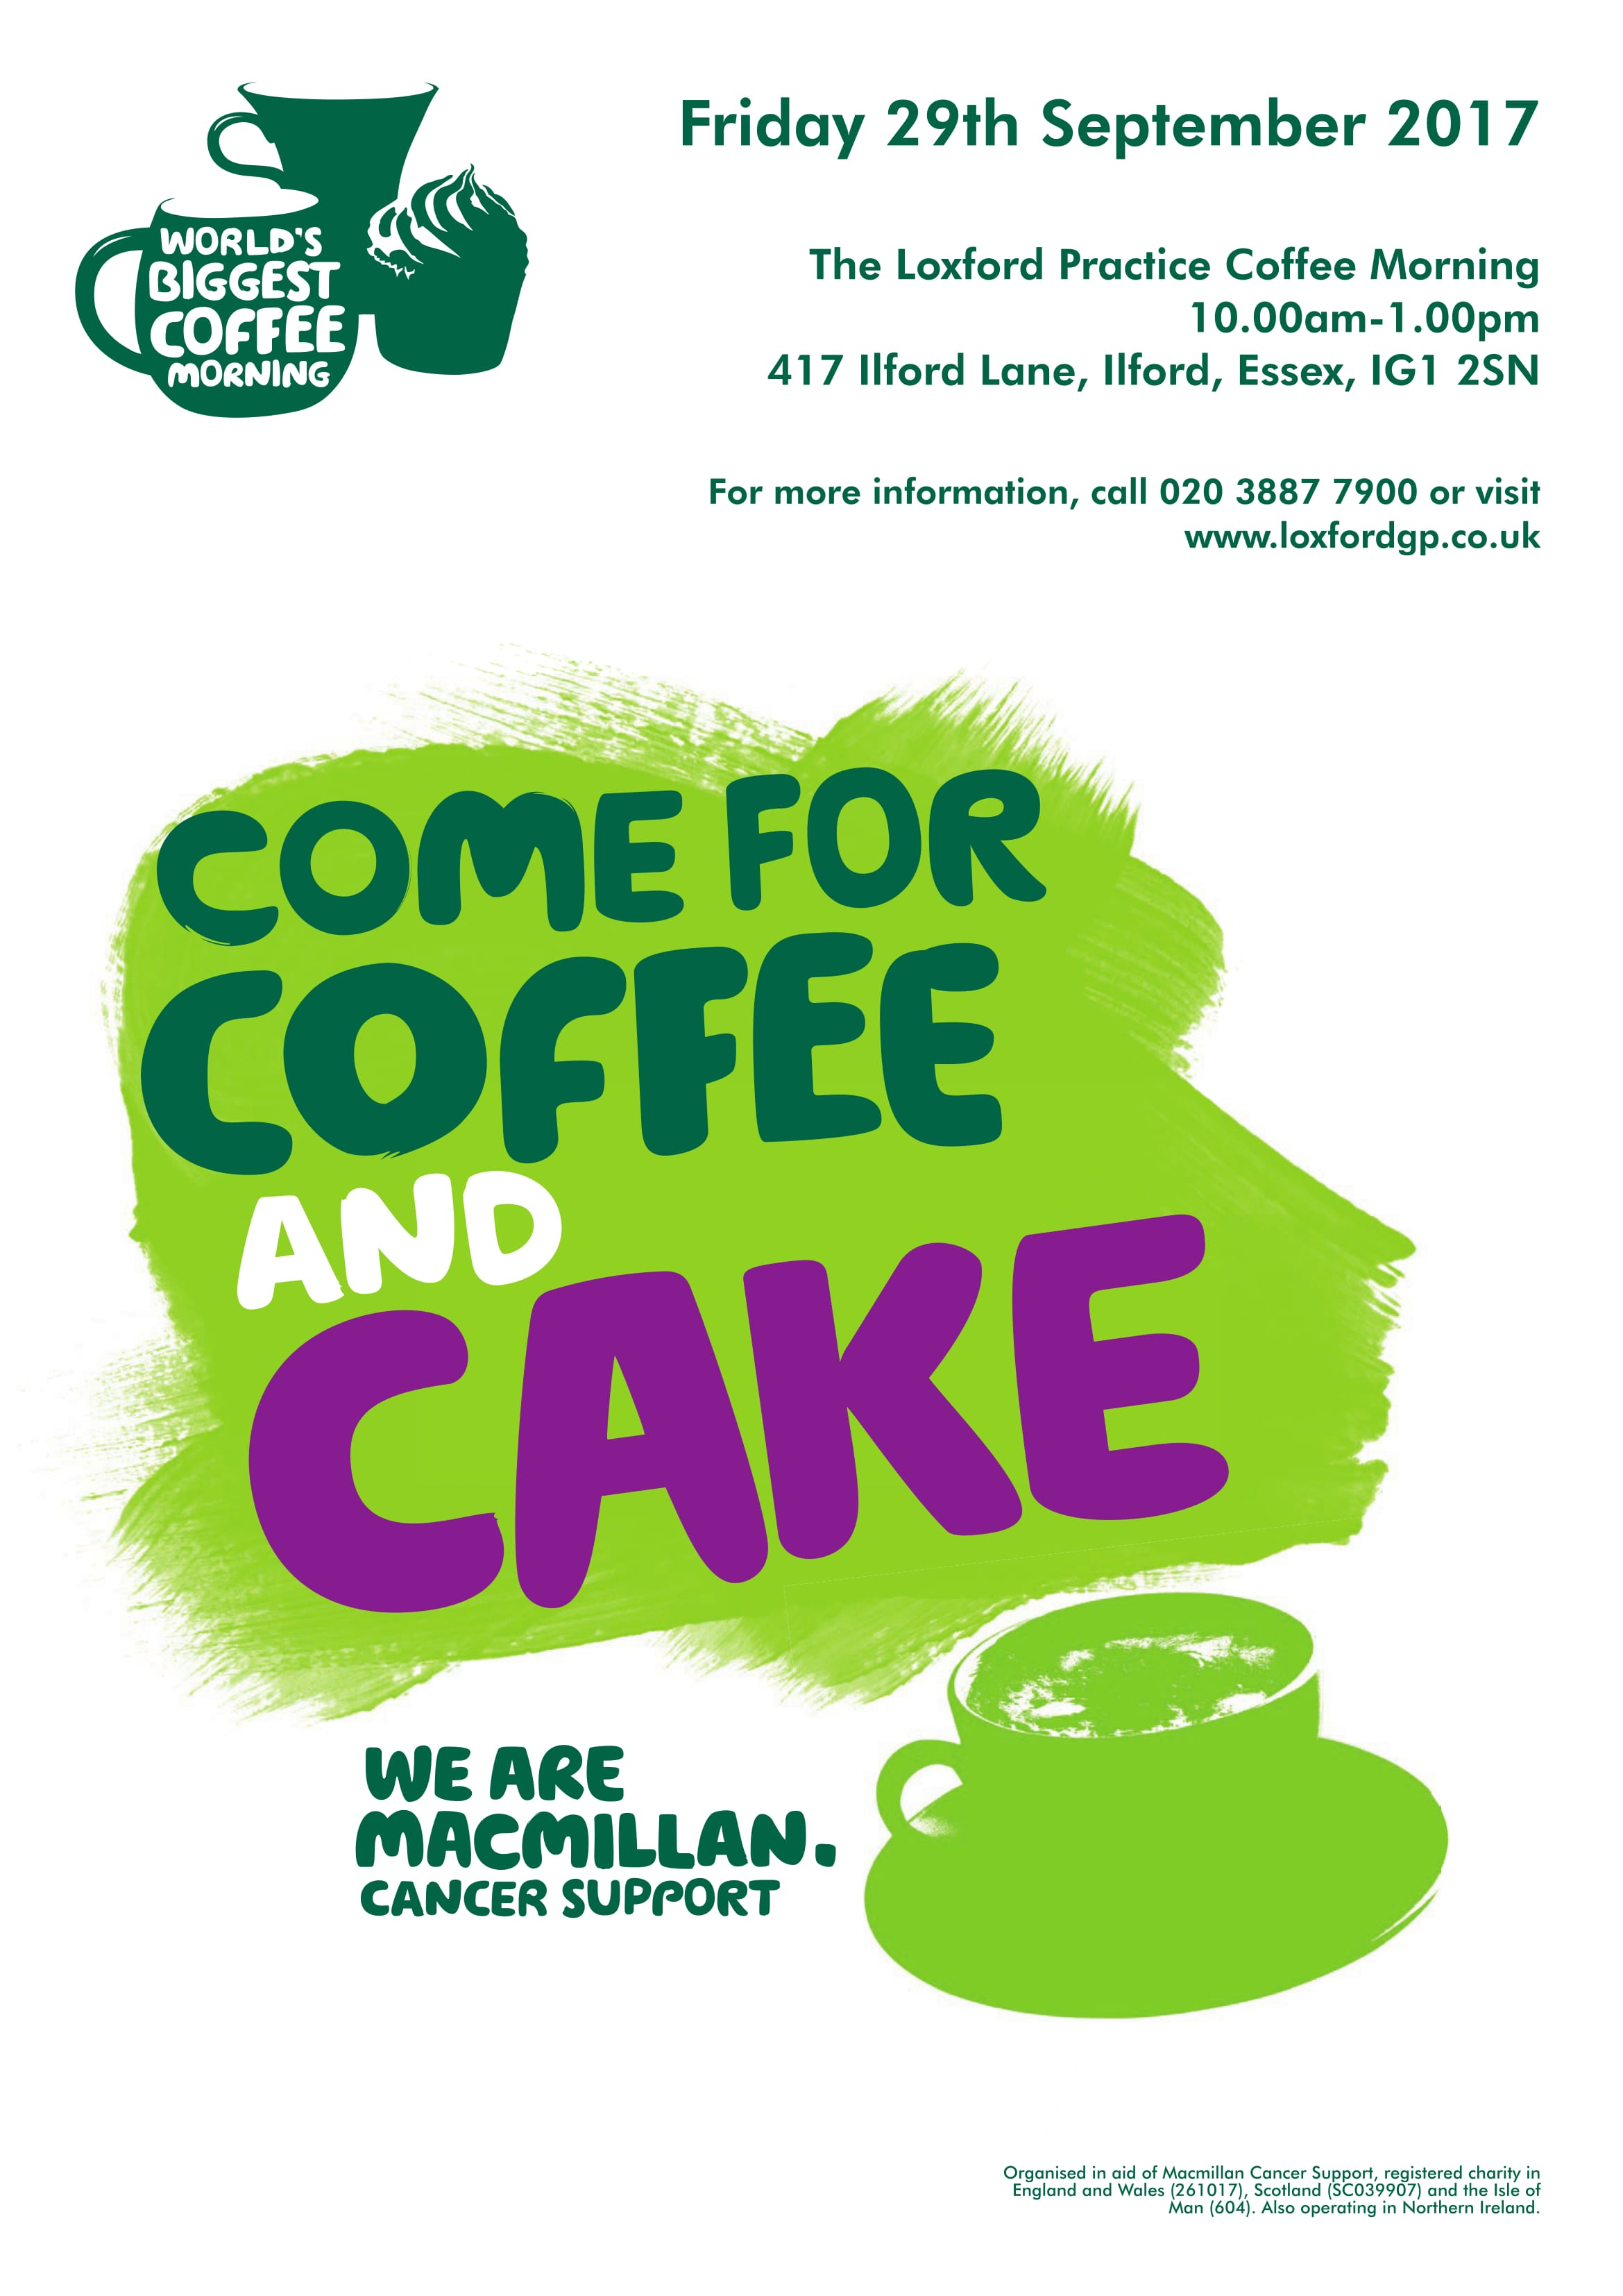 Macmillan Coffee Morning The Loxford Practice Friday